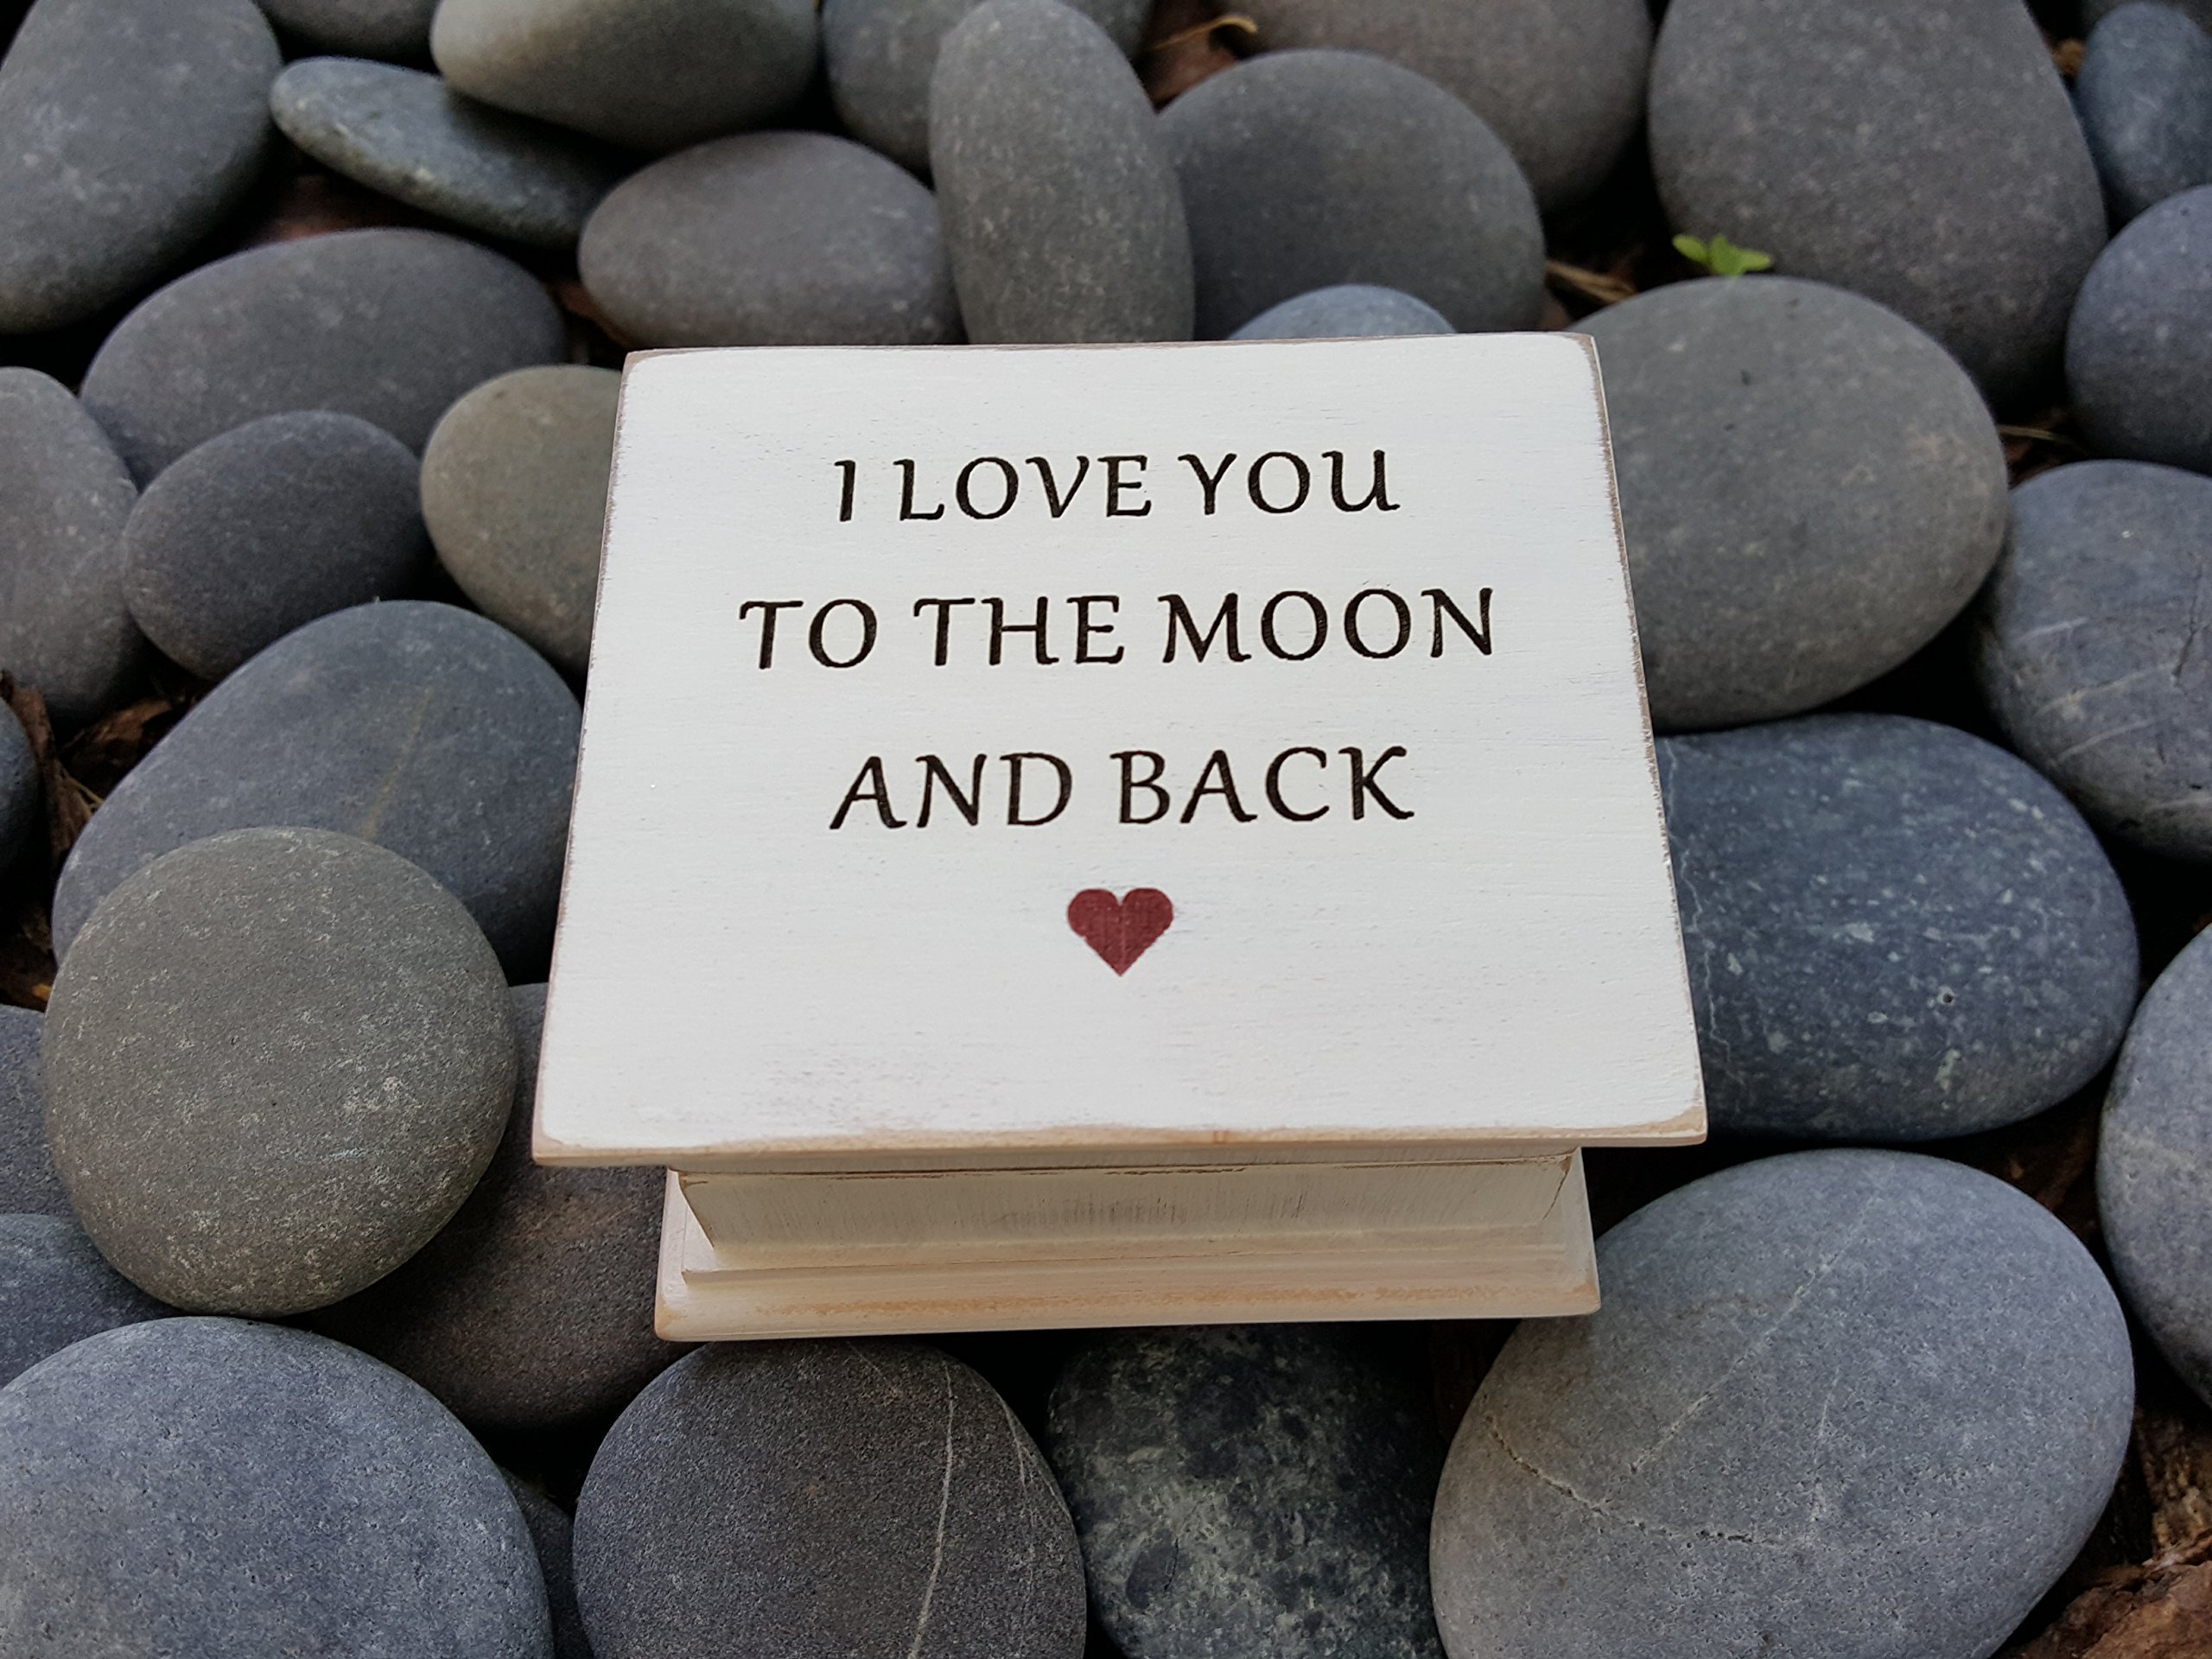 Custom made music box with I love you to the moon and back engraved on top, perfect birthday gift for daughter or mom